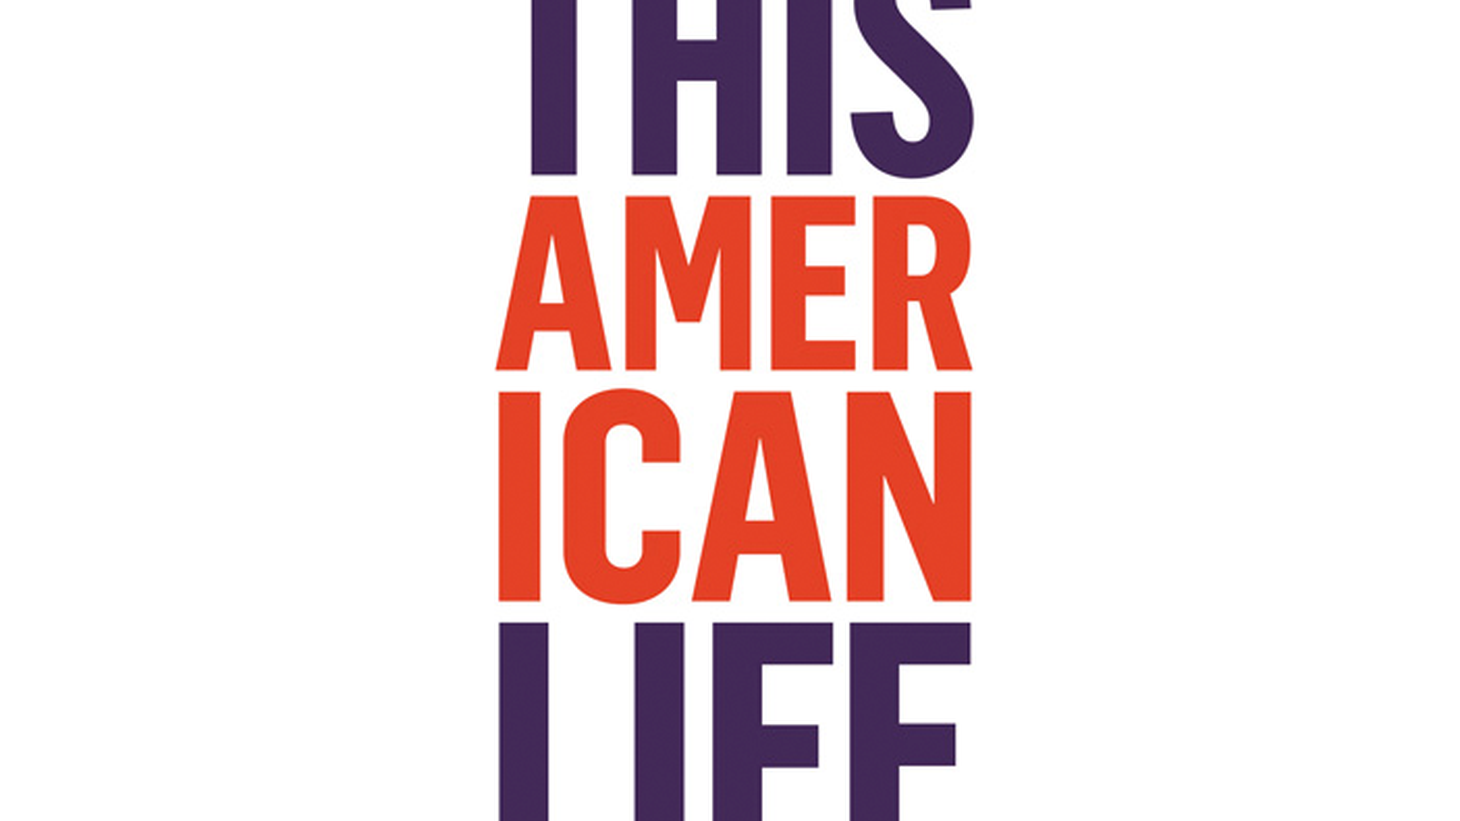 This week's special edition of This American Life features segments from the forthcoming collection Crime Busters and Crossed Wires:  Stories from This American Life.  The complete collection is available as a special premium exclusively during KCRW's Summer Subscription Drive before its official release in fall later this year.